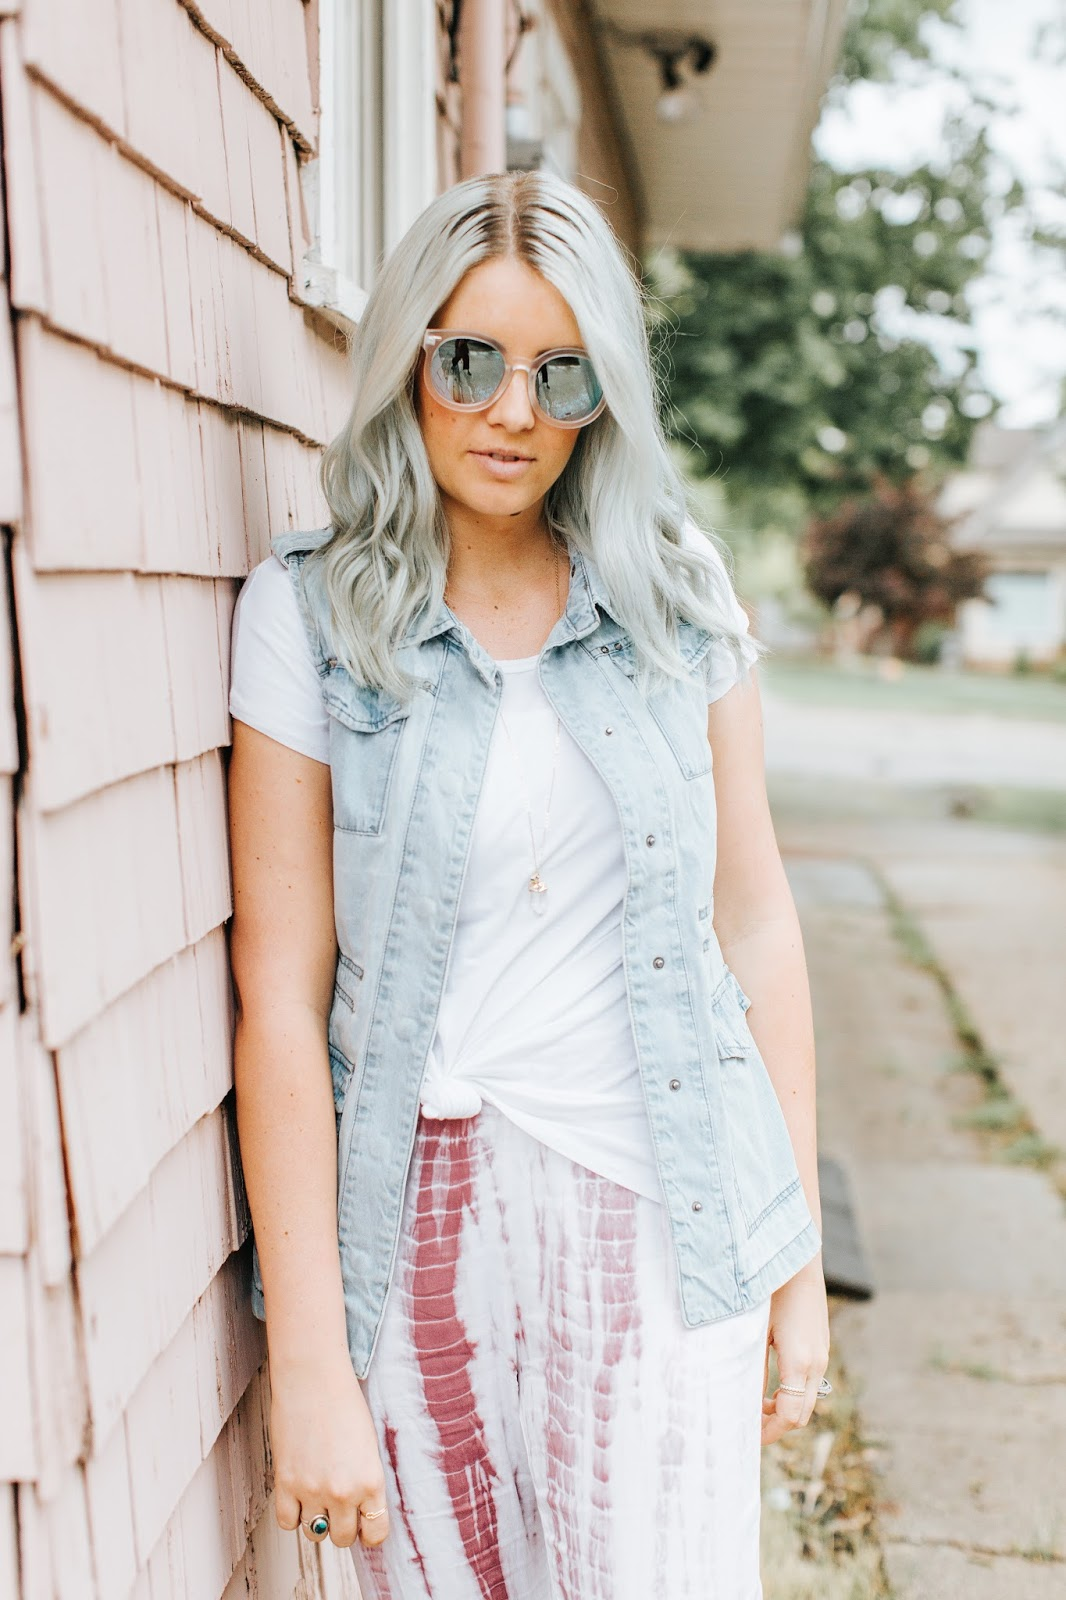 Mint Hair, Modest Outfit, Utah Fashion Blogger